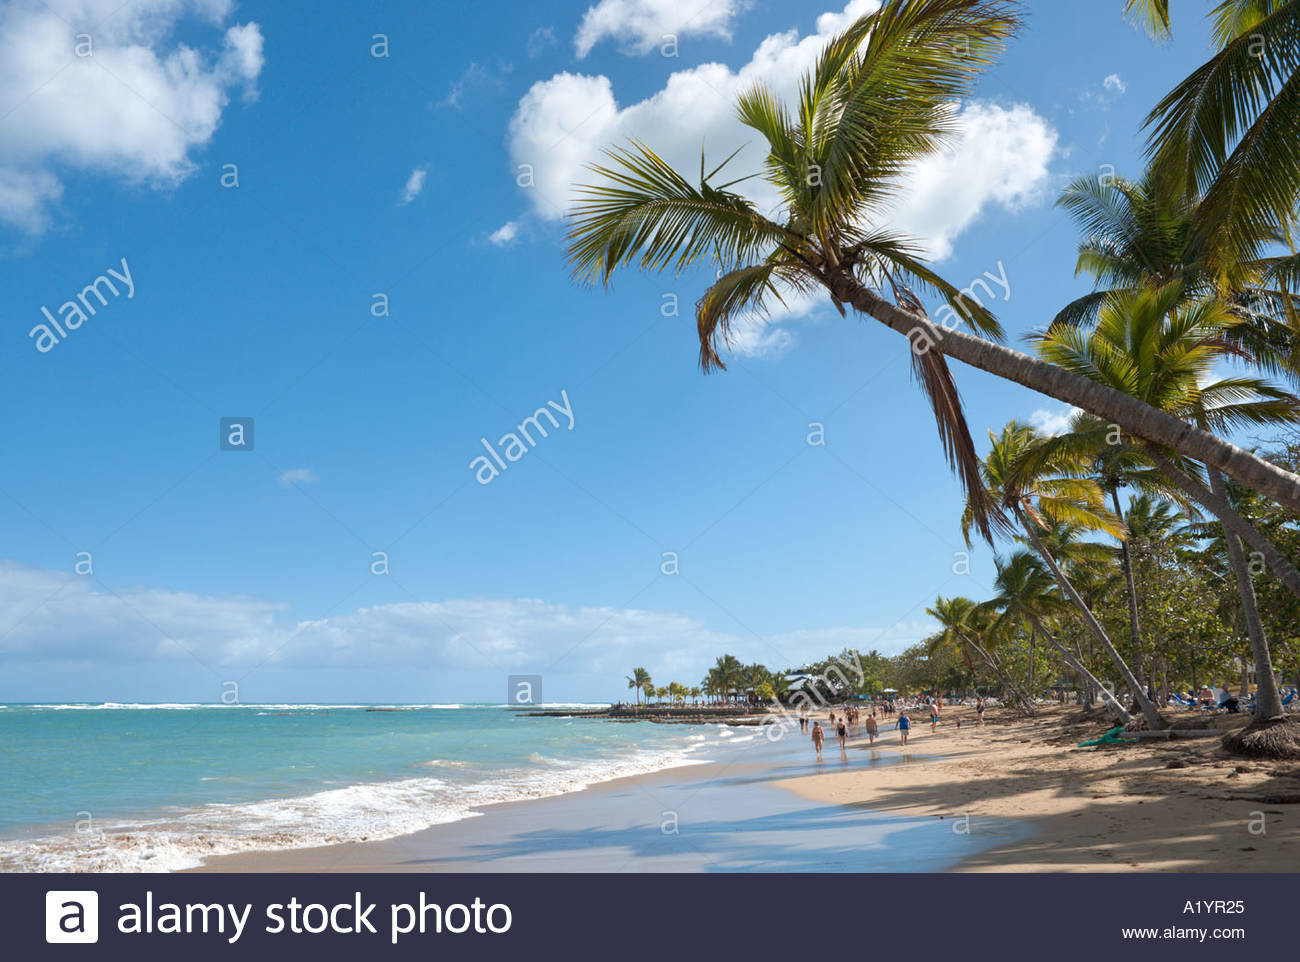 playa dorada upload Download playa dorada stock photos affordable and search from millions of royalty free images, photos and vectors thousands of images added daily.